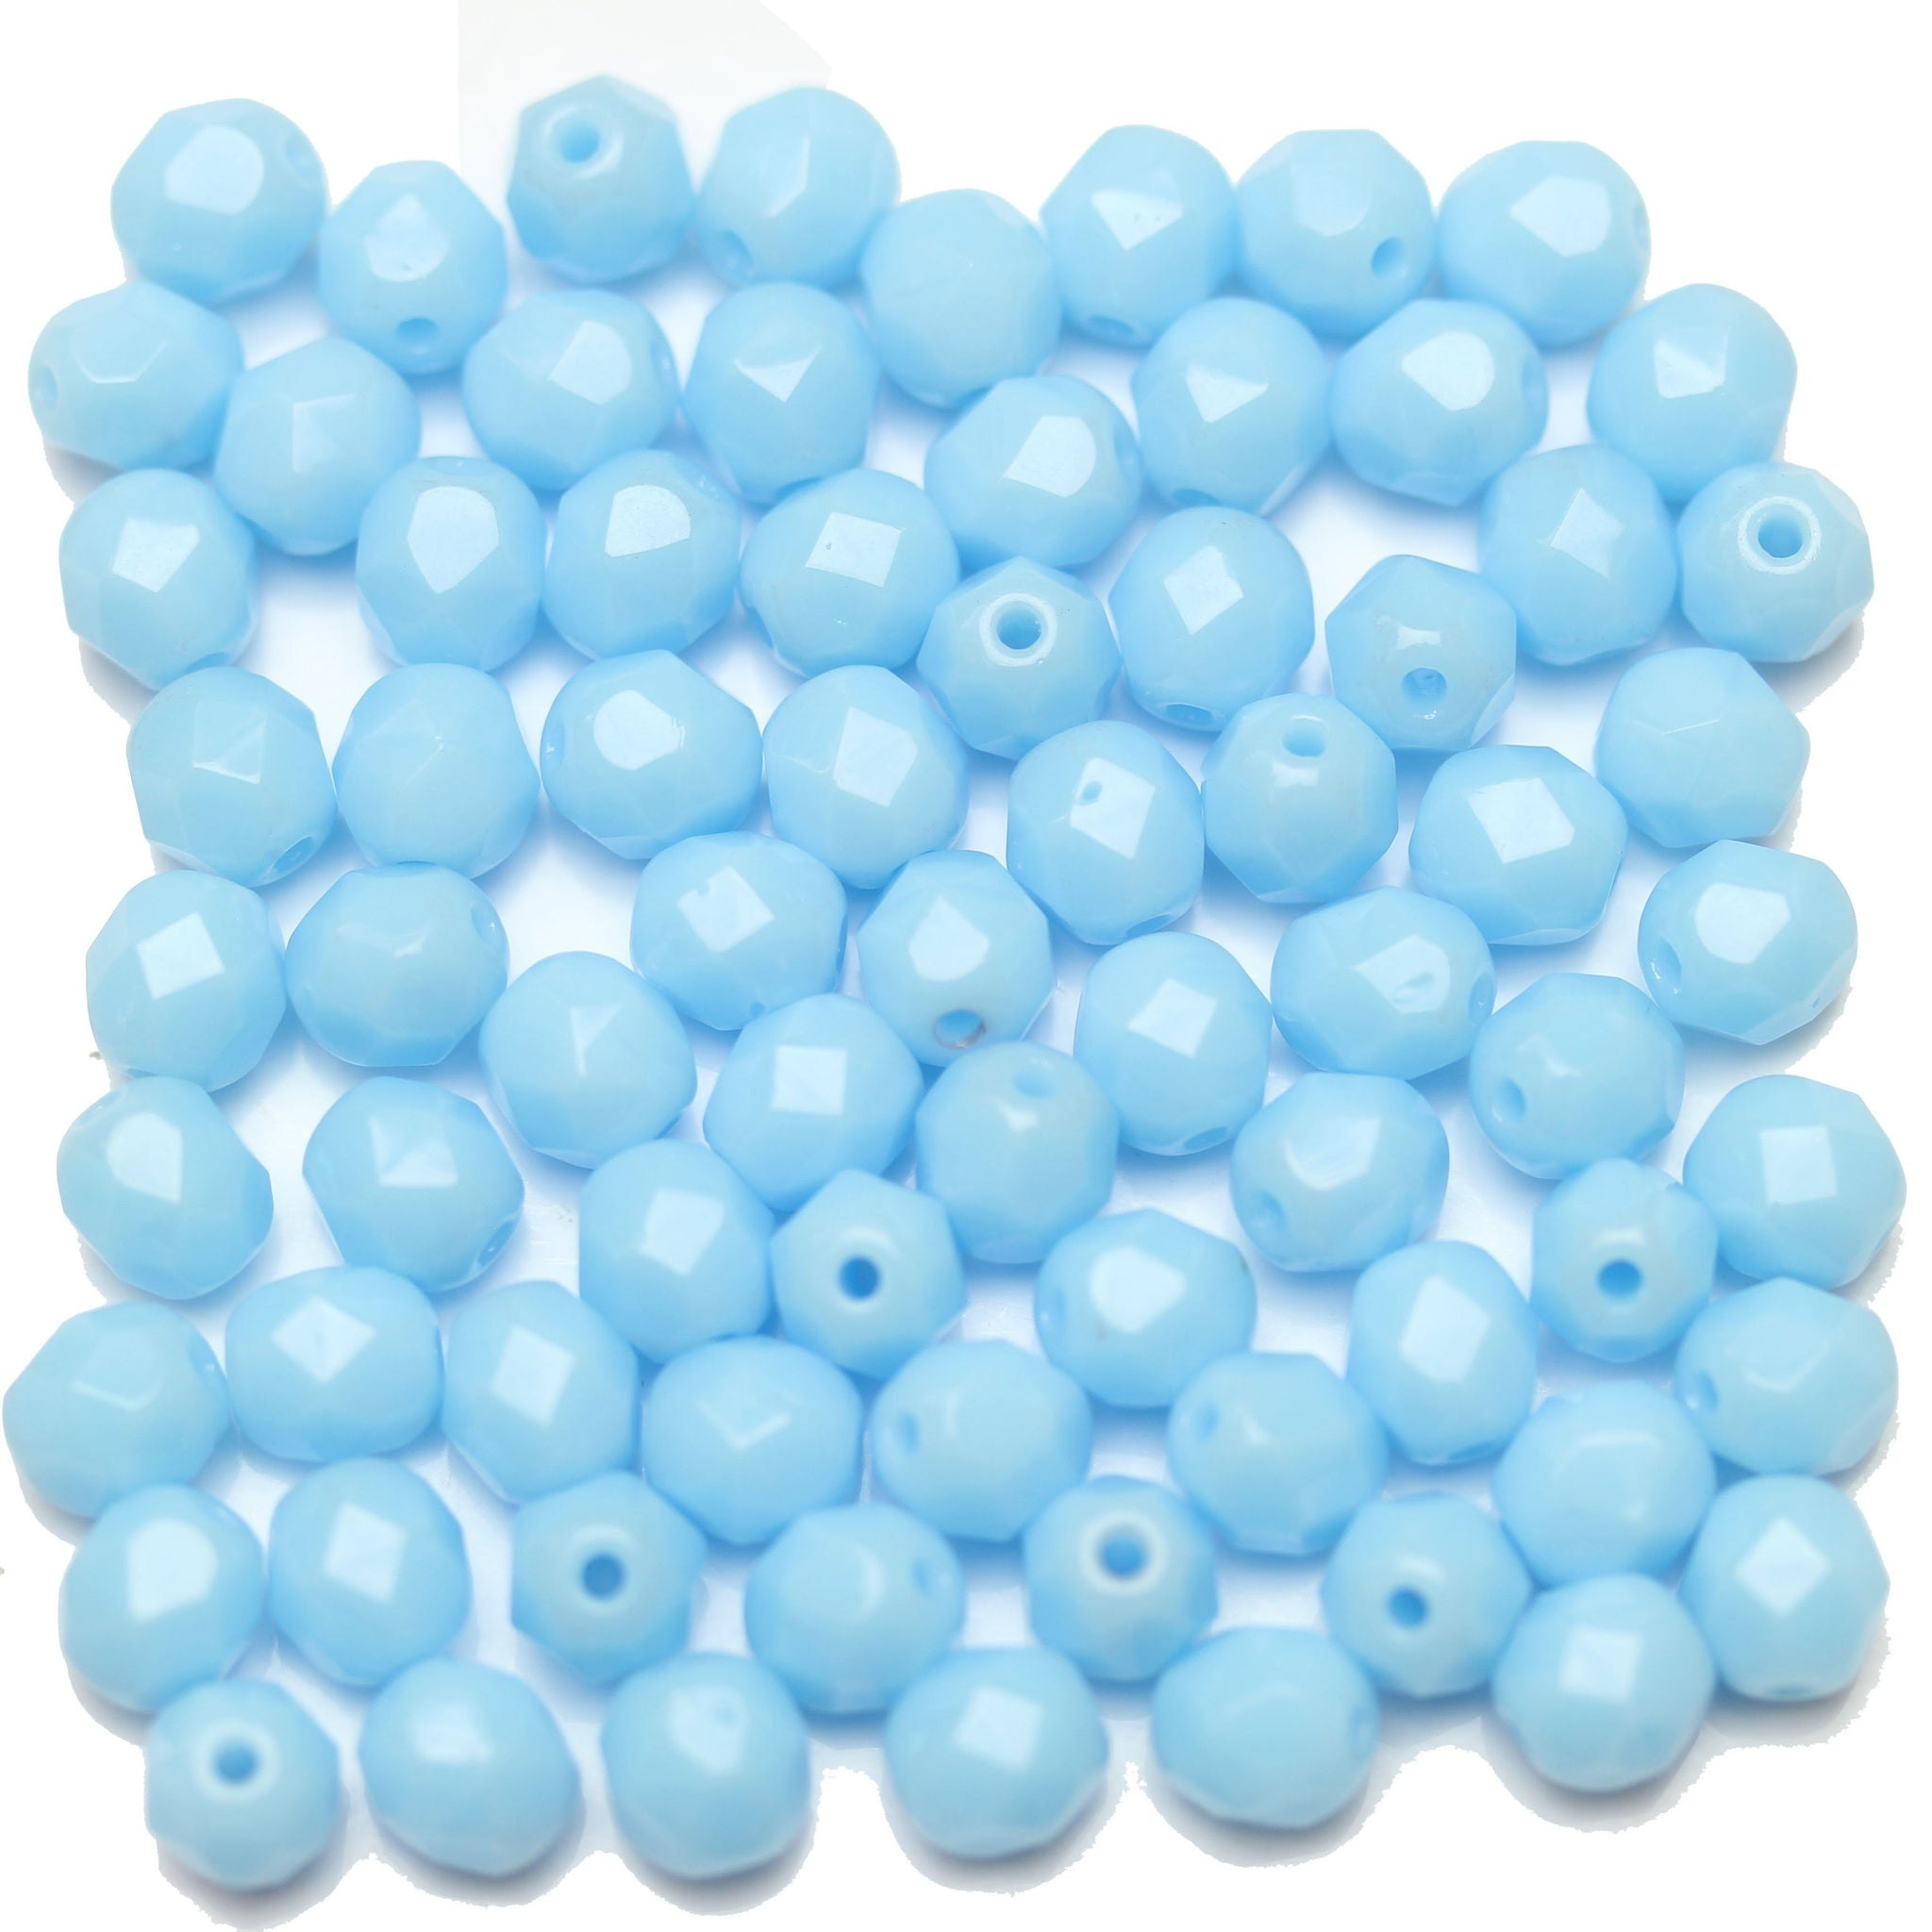 25 x Glass Pearl Beads 10mm Round Pale Blue